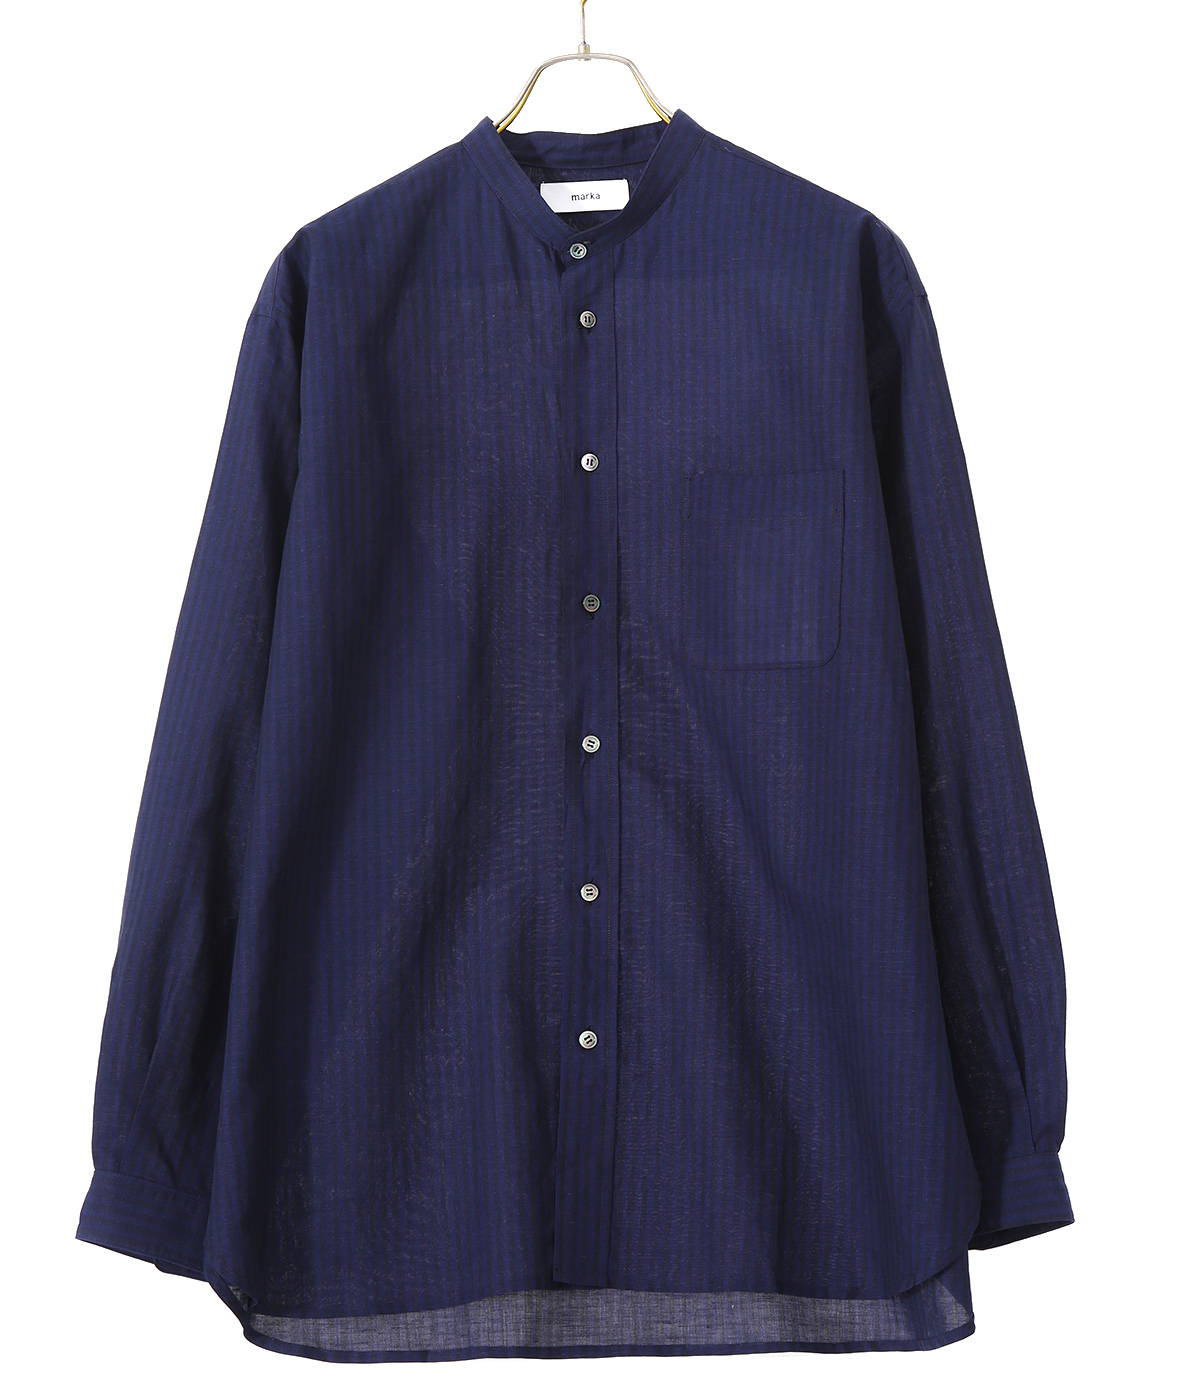 【予約】BAND COLLAR SHIRT - cotton linen stripe -